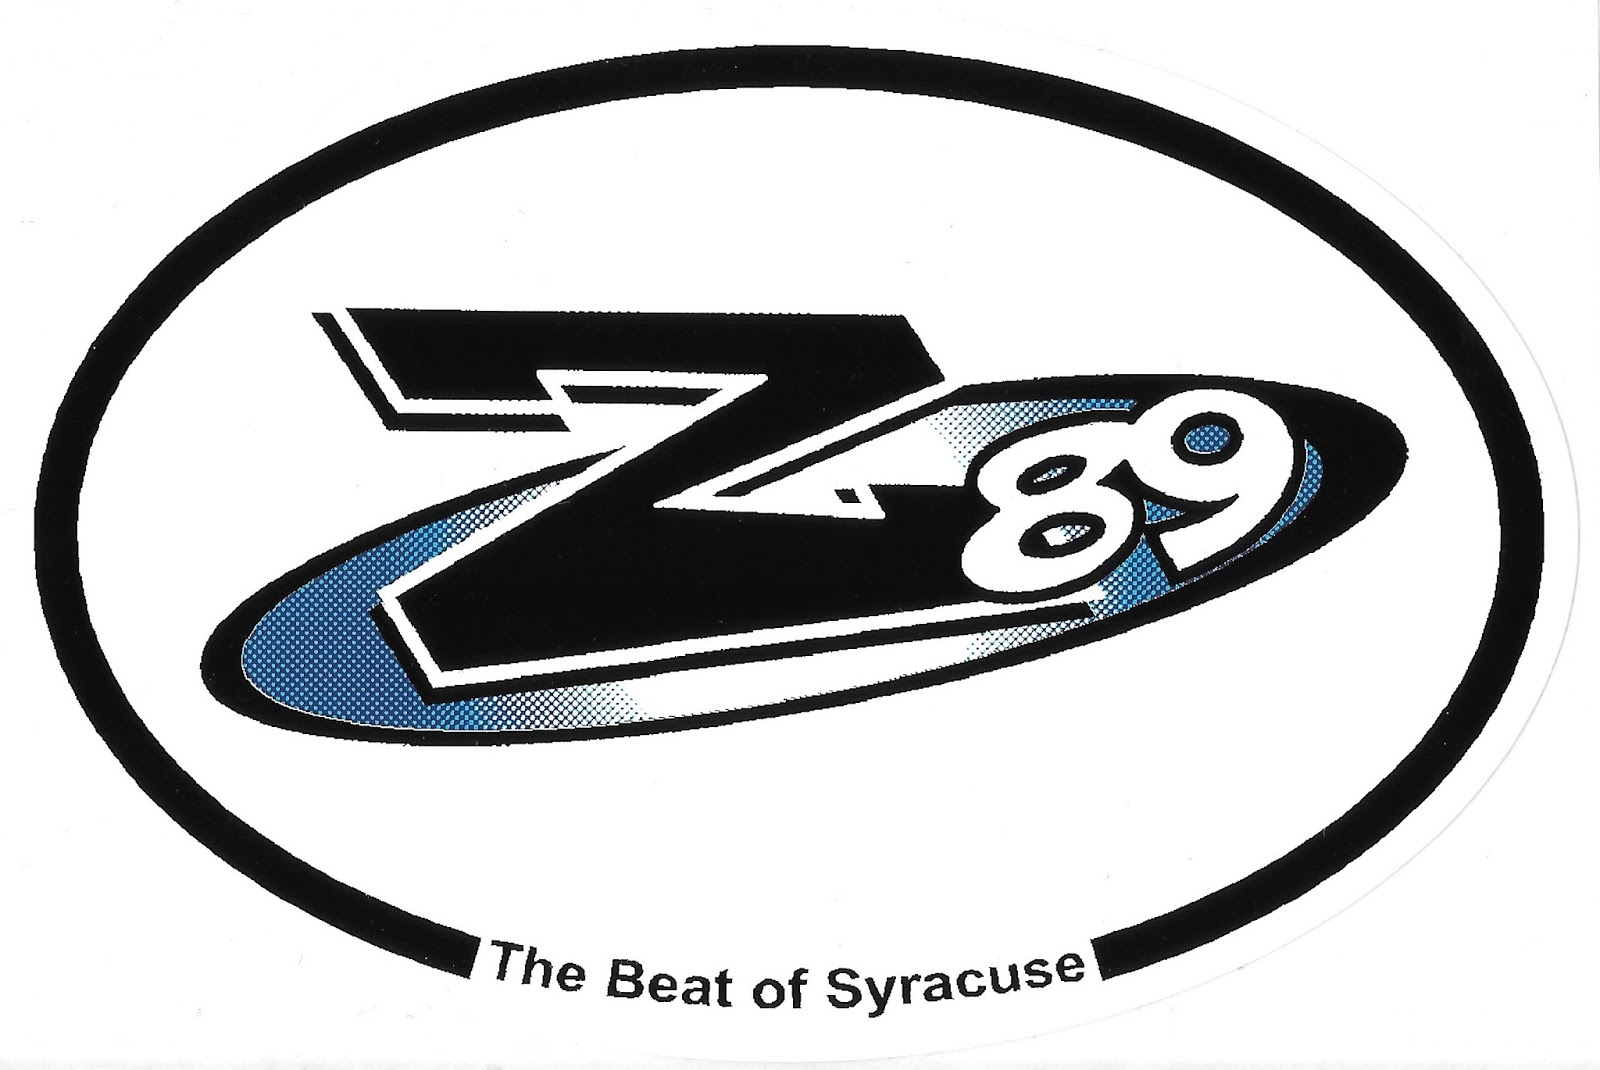 z 89 syracuse - photo#5